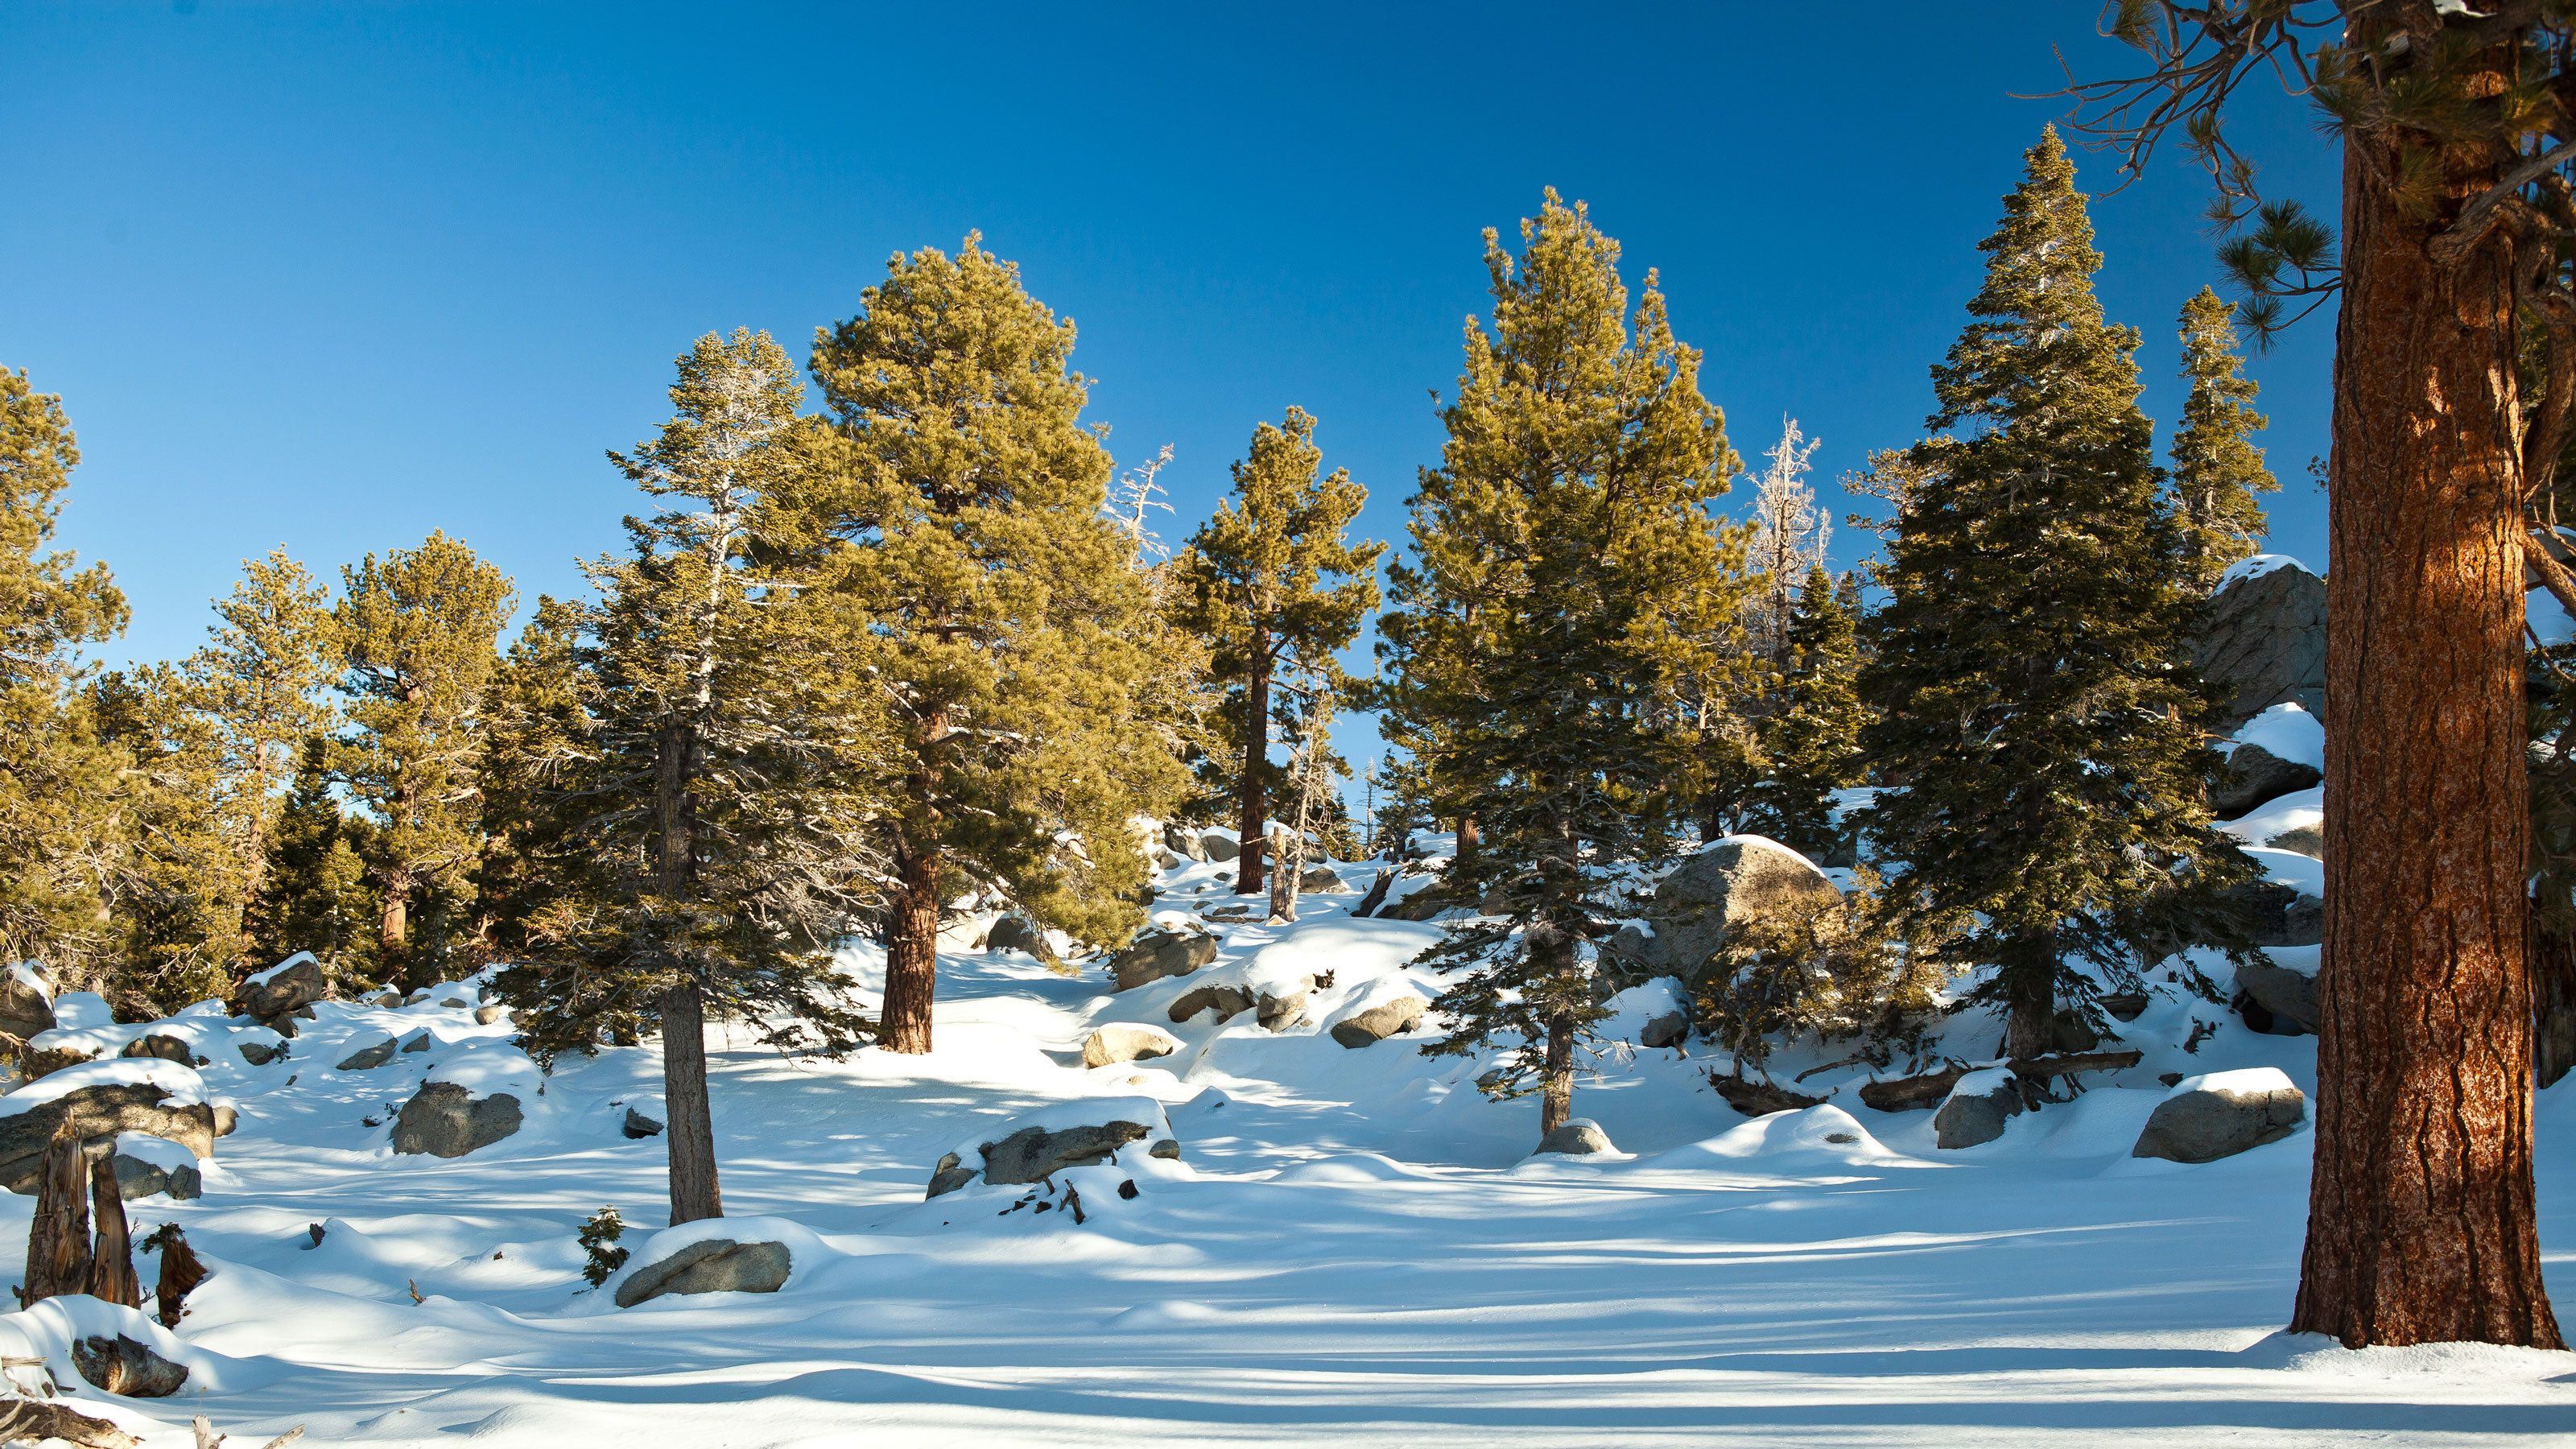 Snow-covered forest at Mount San Jacinto State Park in California